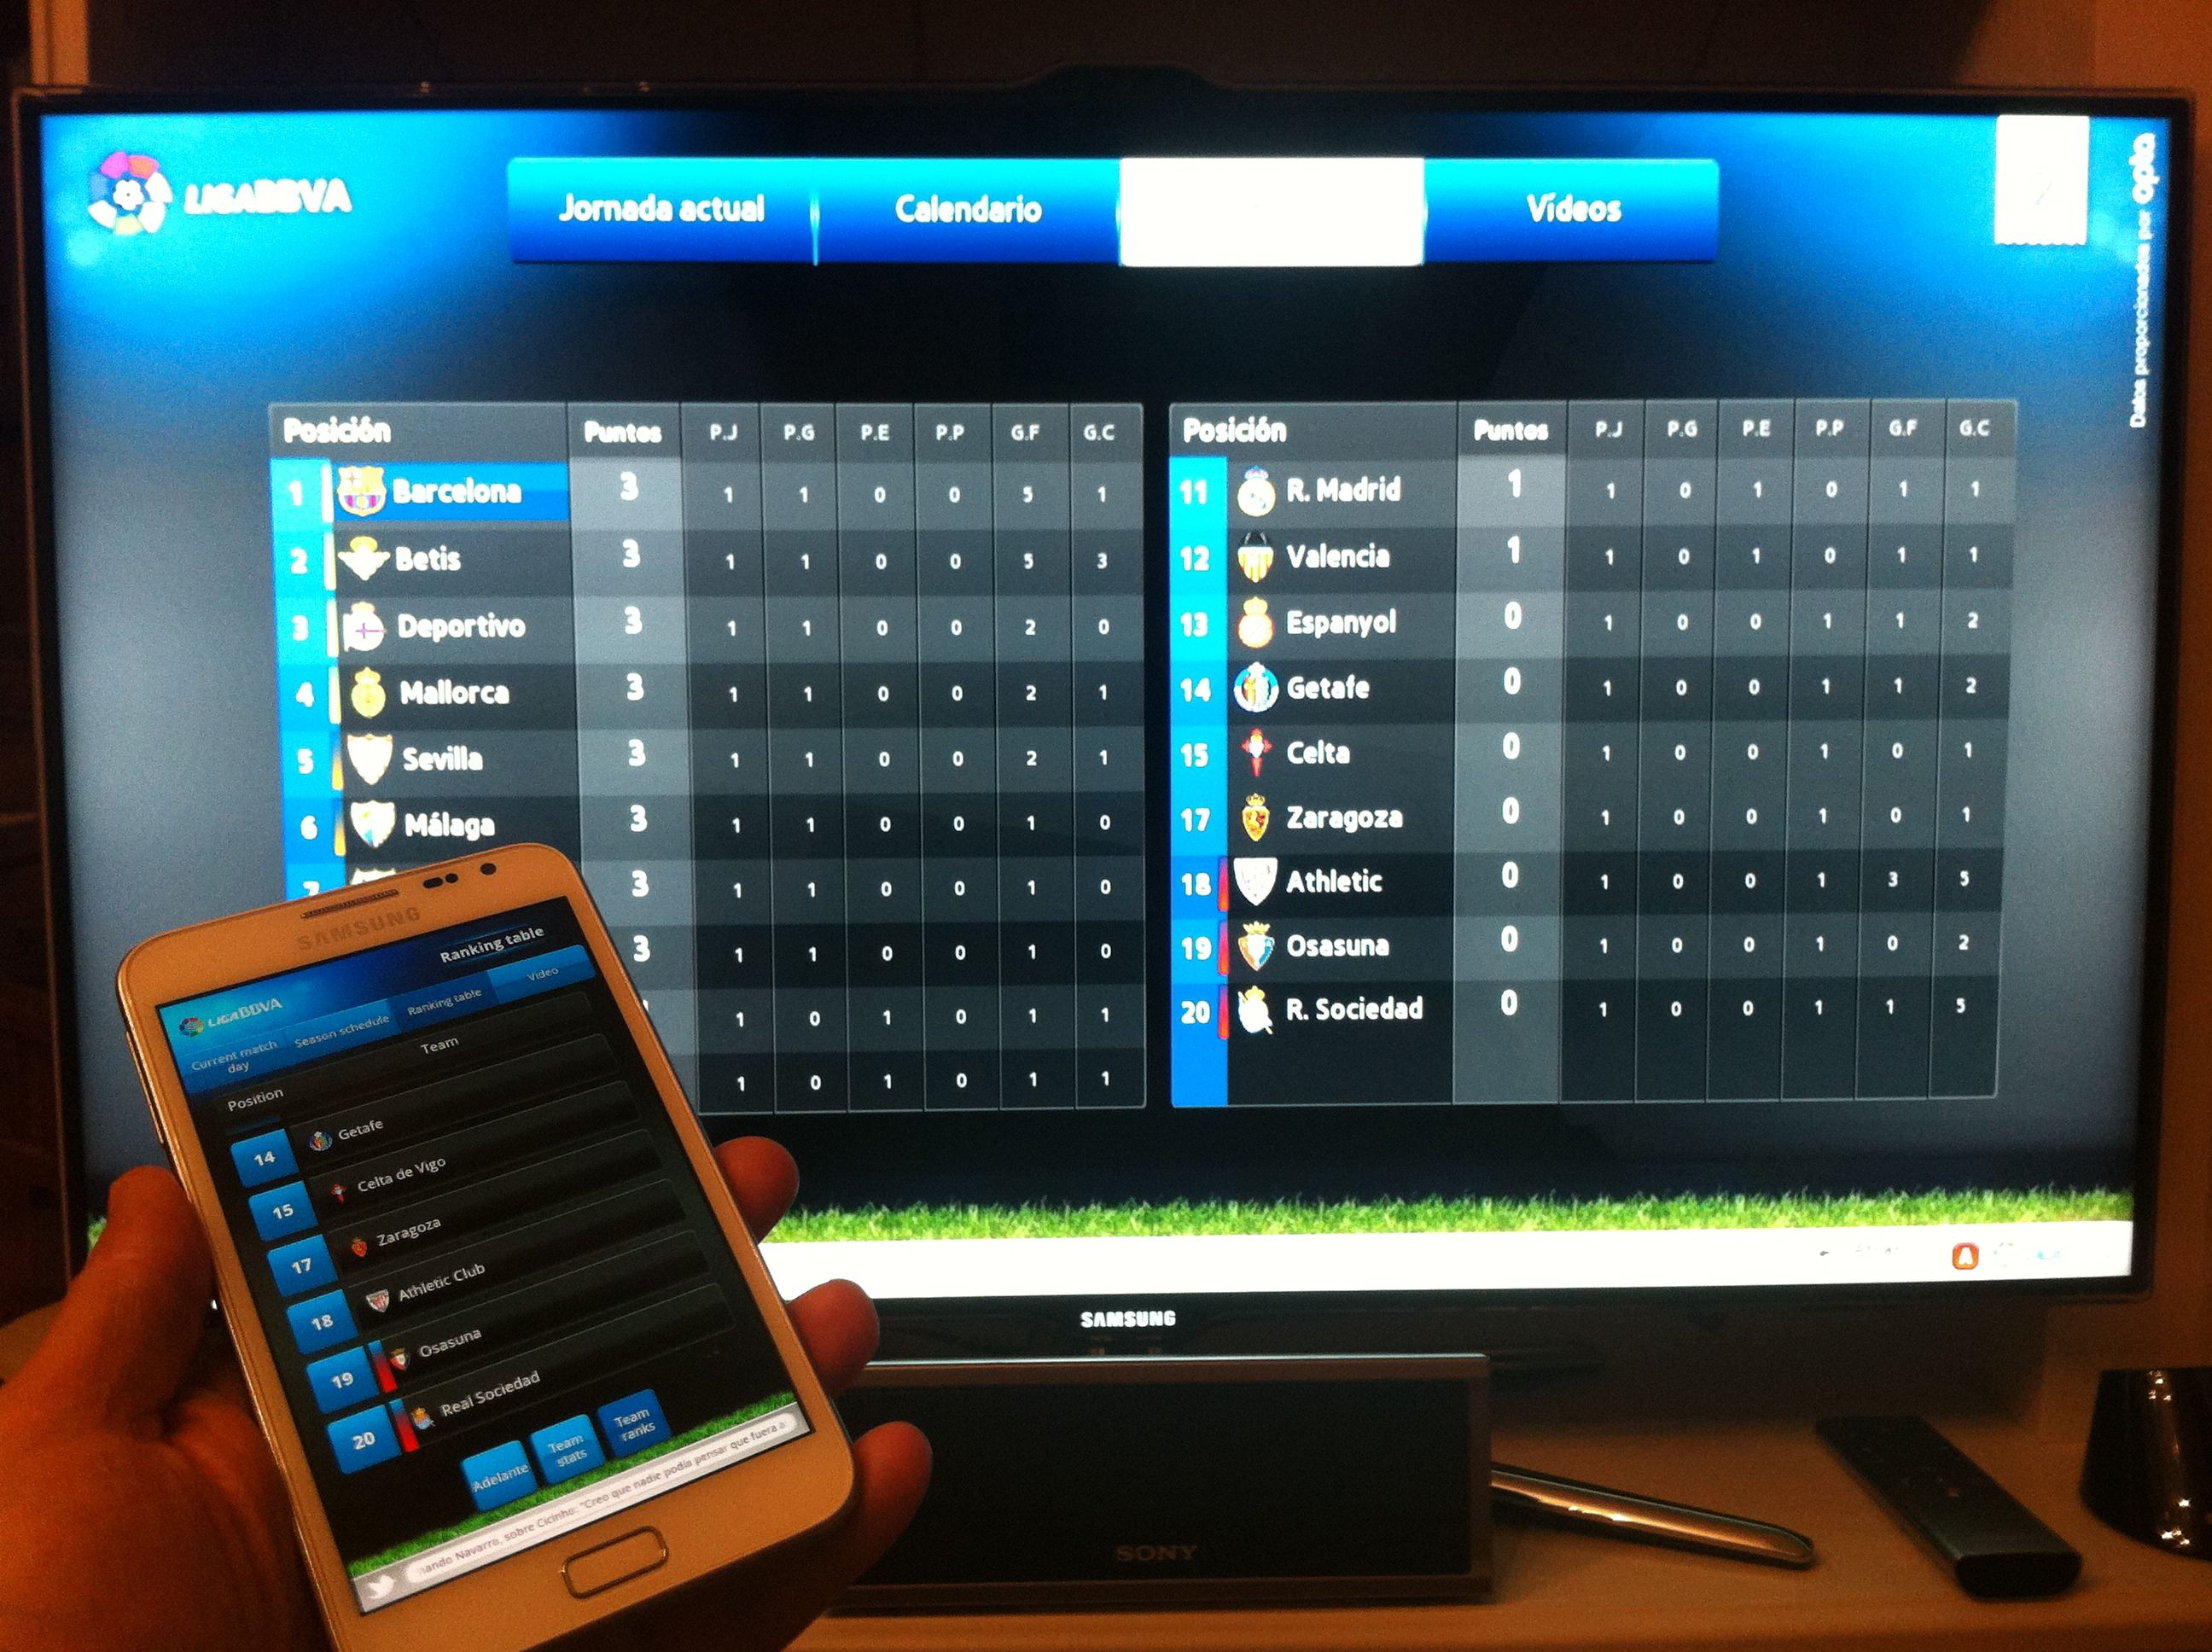 Liga bbva smart tv app and it second screen app in android